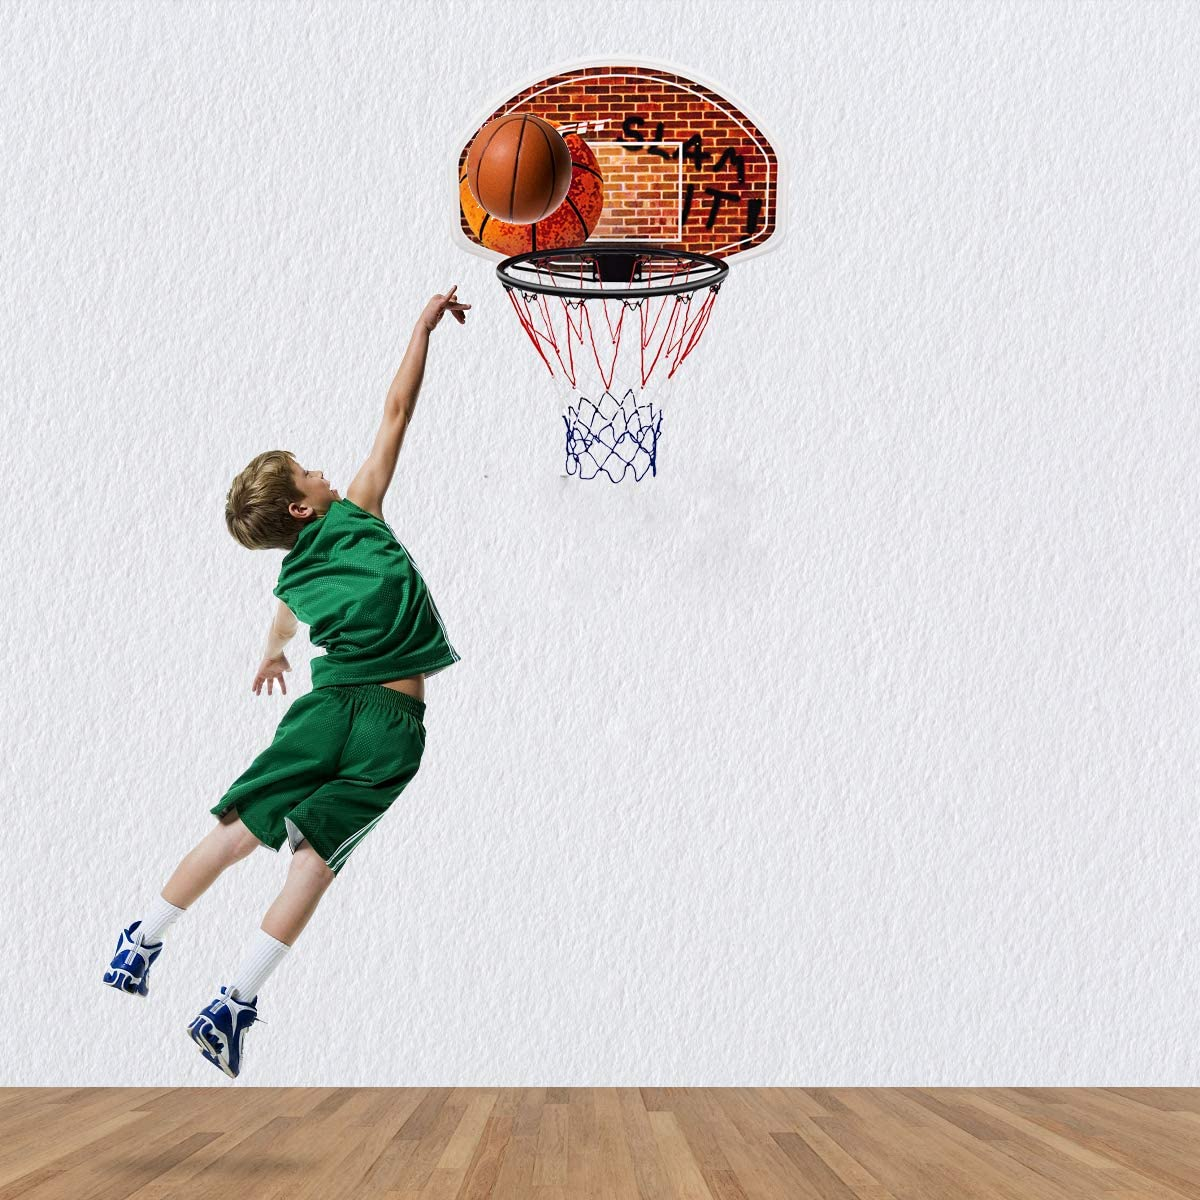 Goplus 29 x 20 Mini Basketball Hoop Wall Mounted Portable Basketball Backboard Indoor Outdoor Sports Suitable